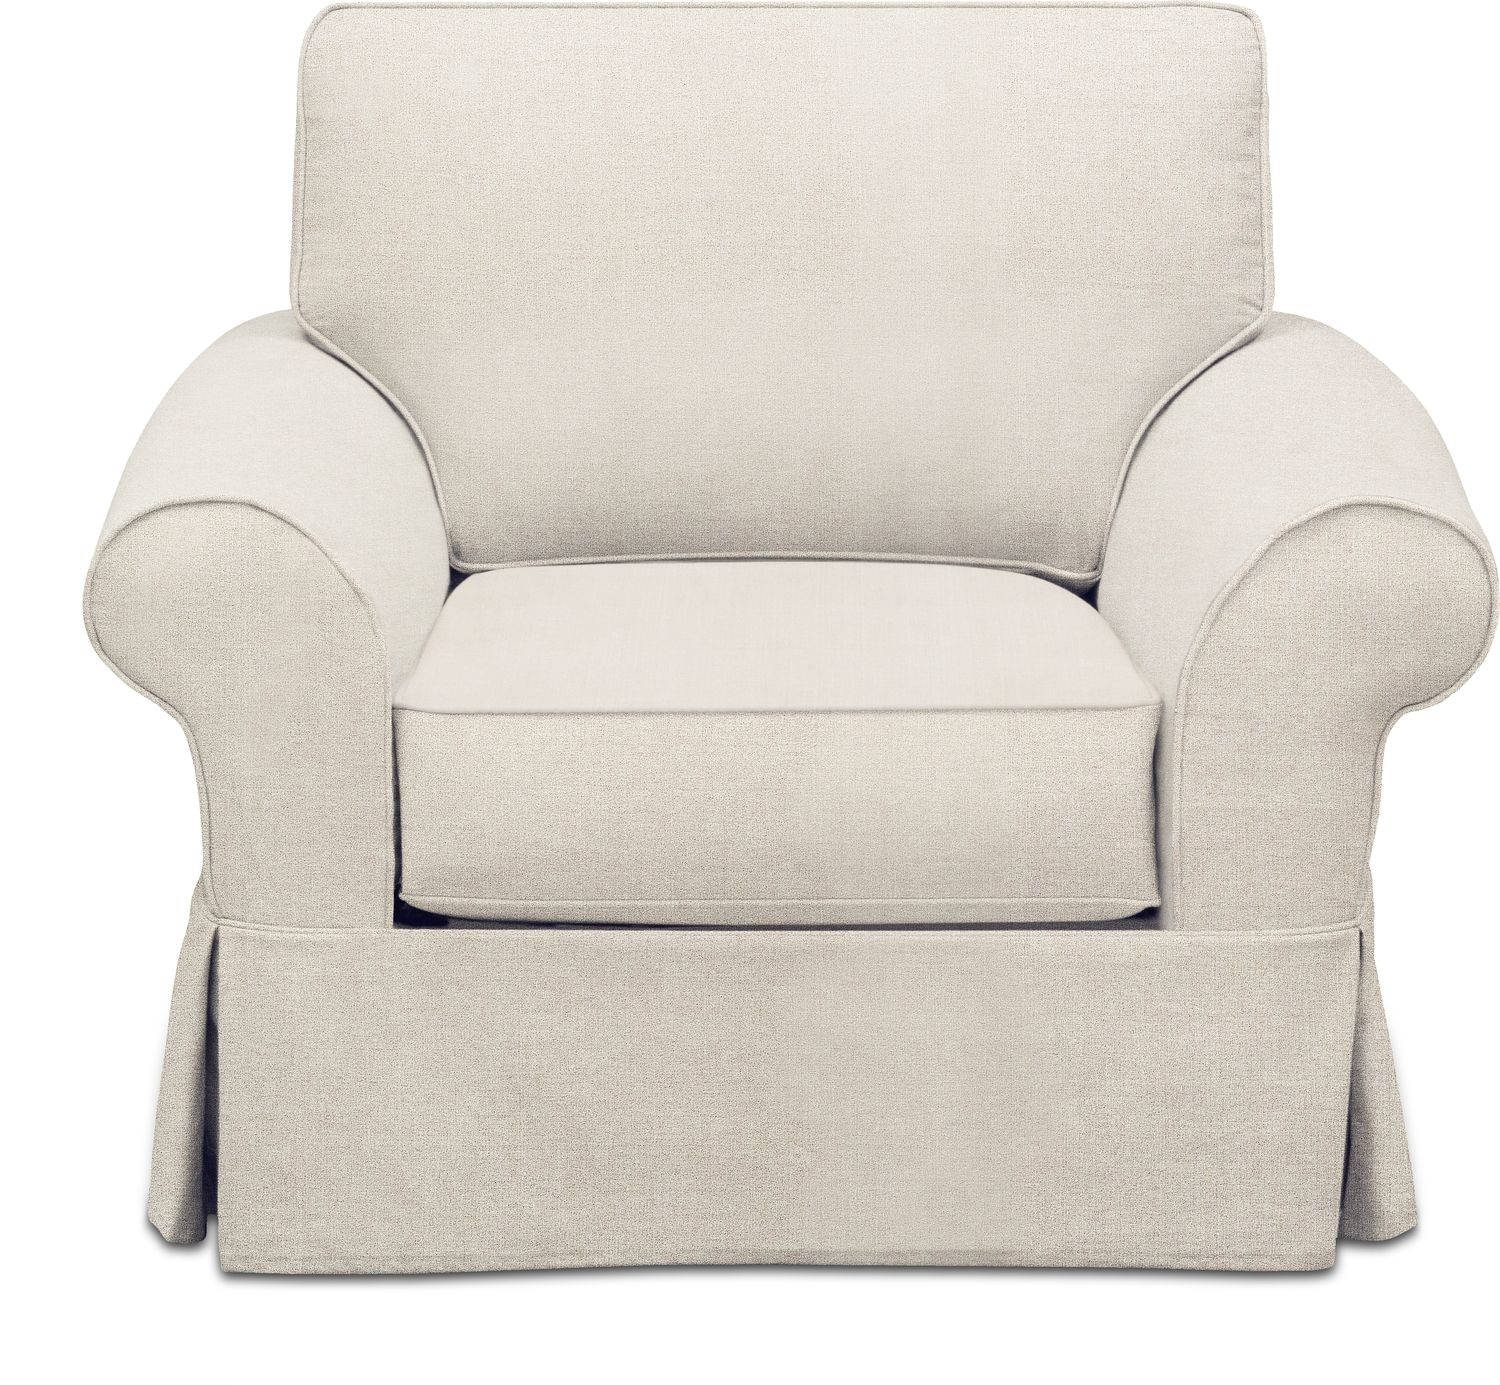 Living Room Furniture - Sawyer Slipcover Chair